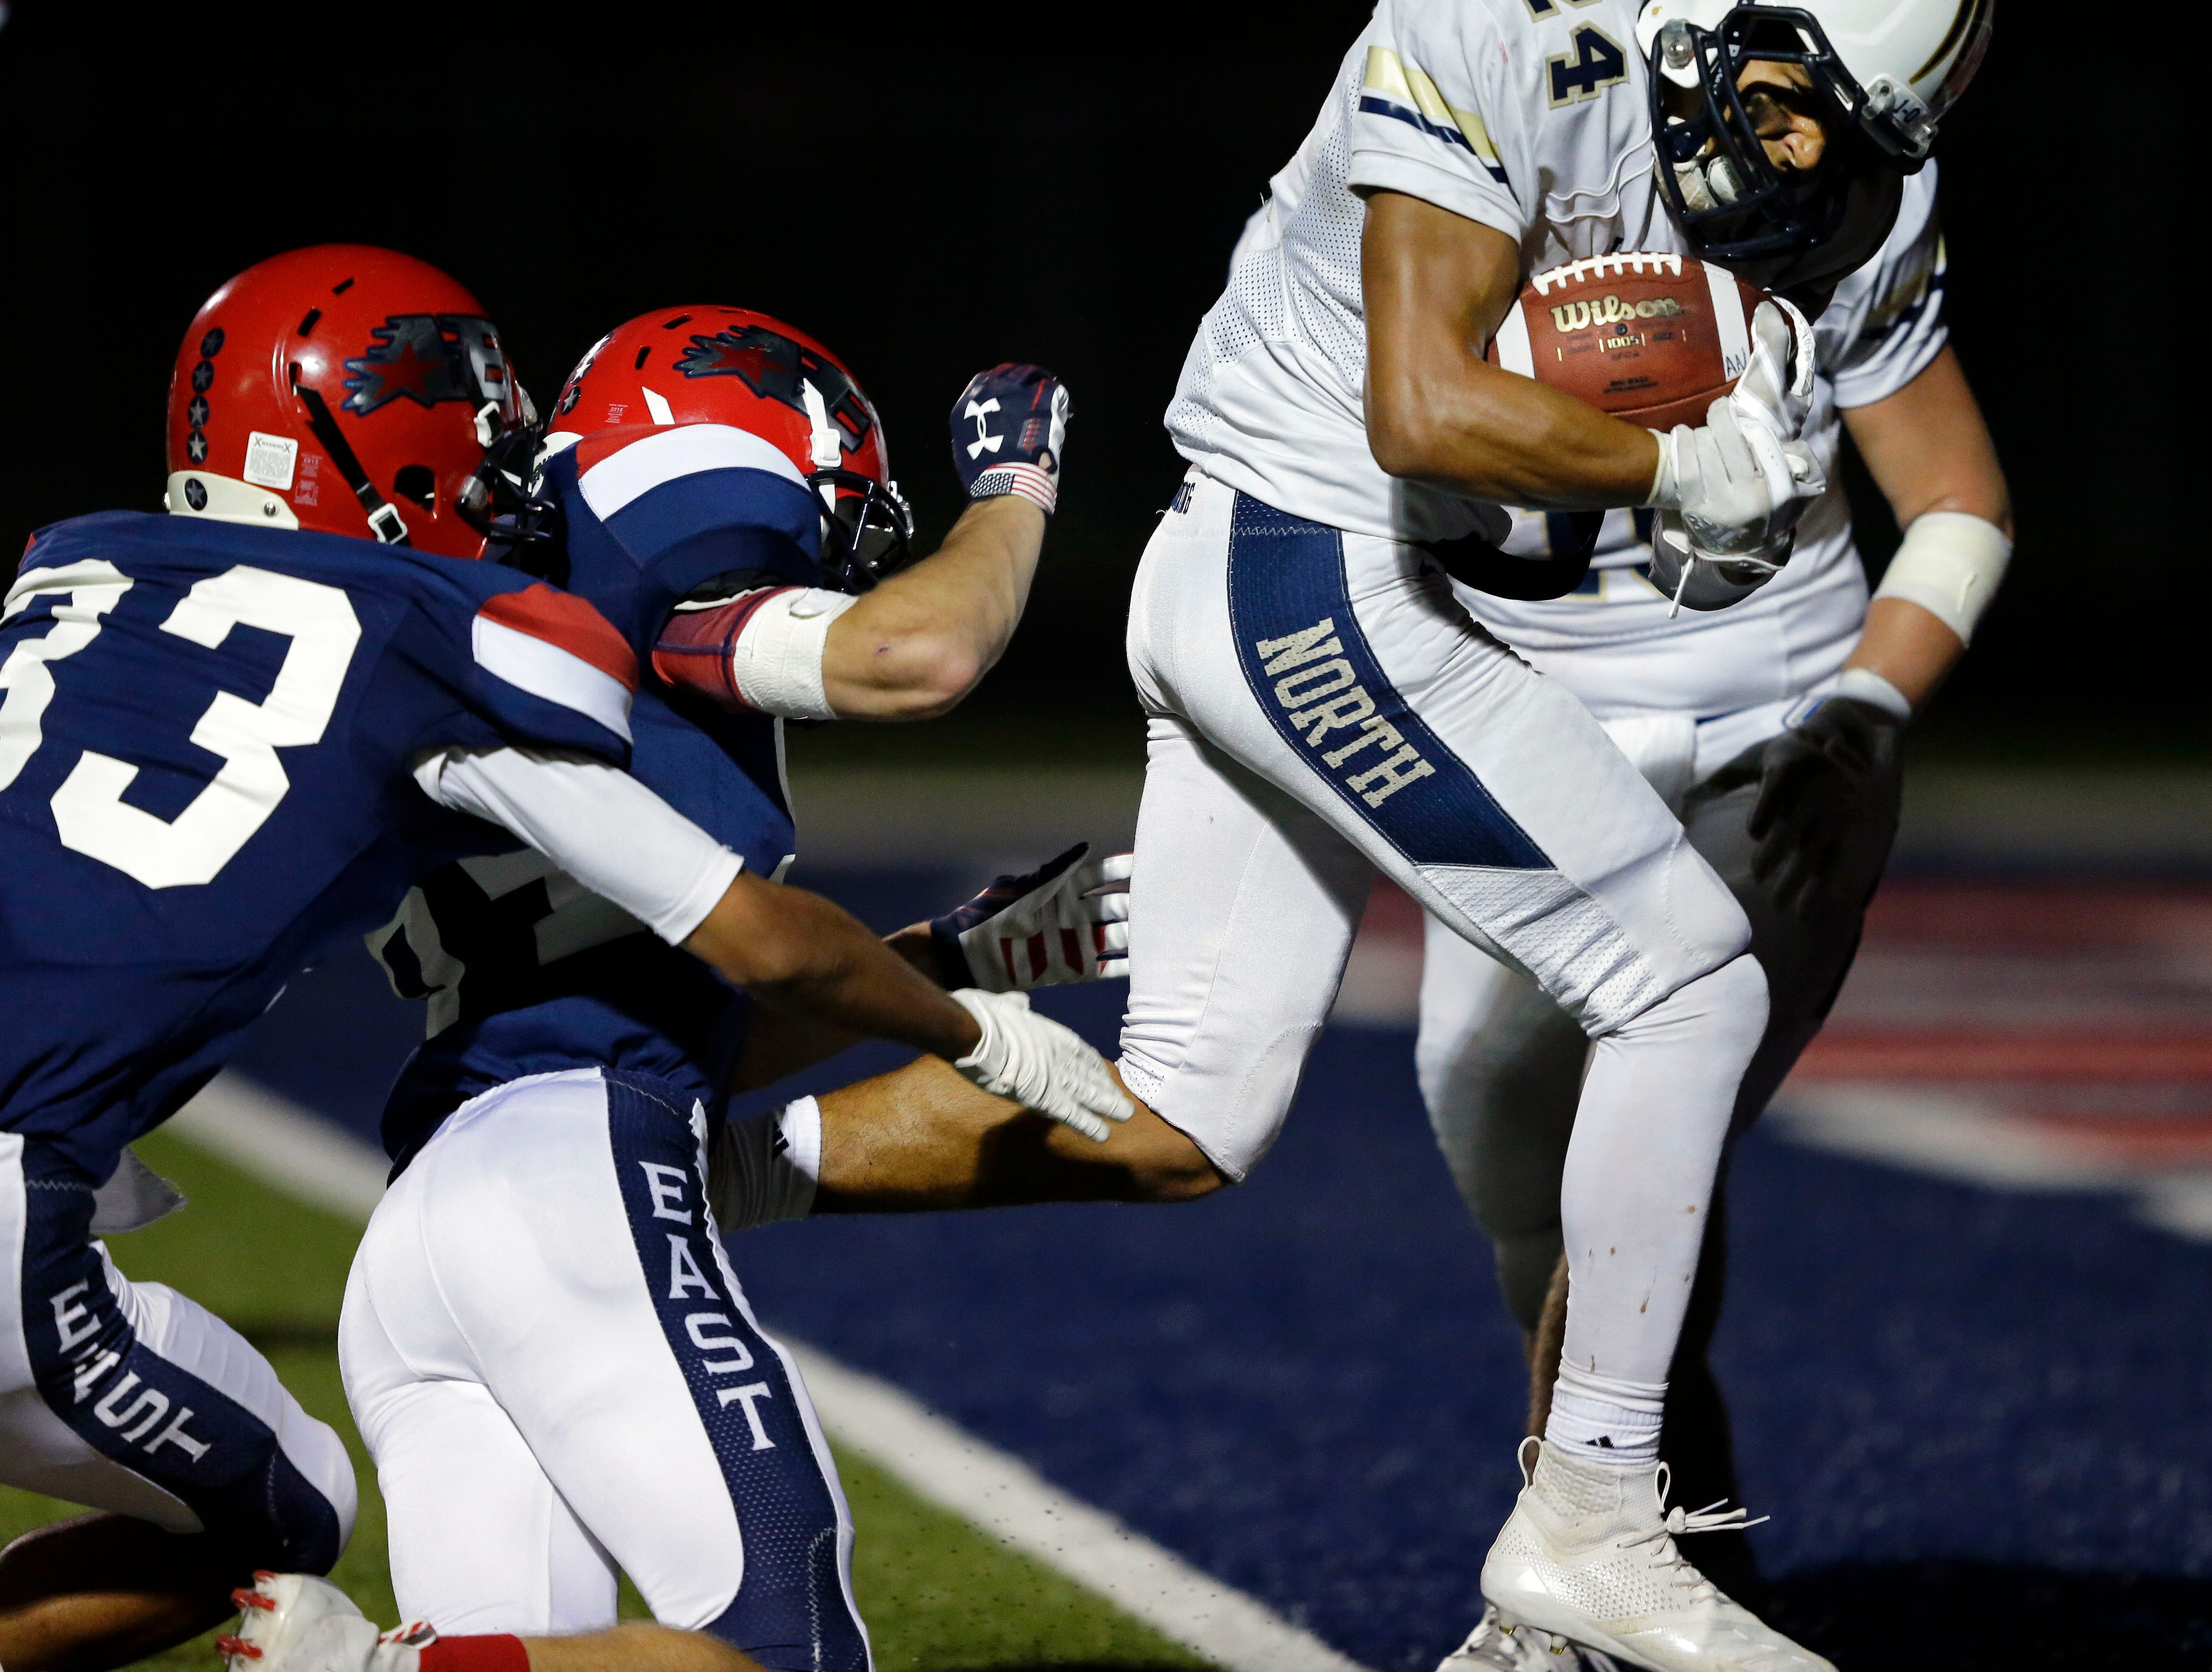 Ian Laatsch of Appleton North runs in for a touchdown against Appleton East in a Valley Football Association game Friday, September 14, 2018, at Appleton East High School in Appleton, Wis.Ron Page/USA TODAY NETWORK-Wisconsin